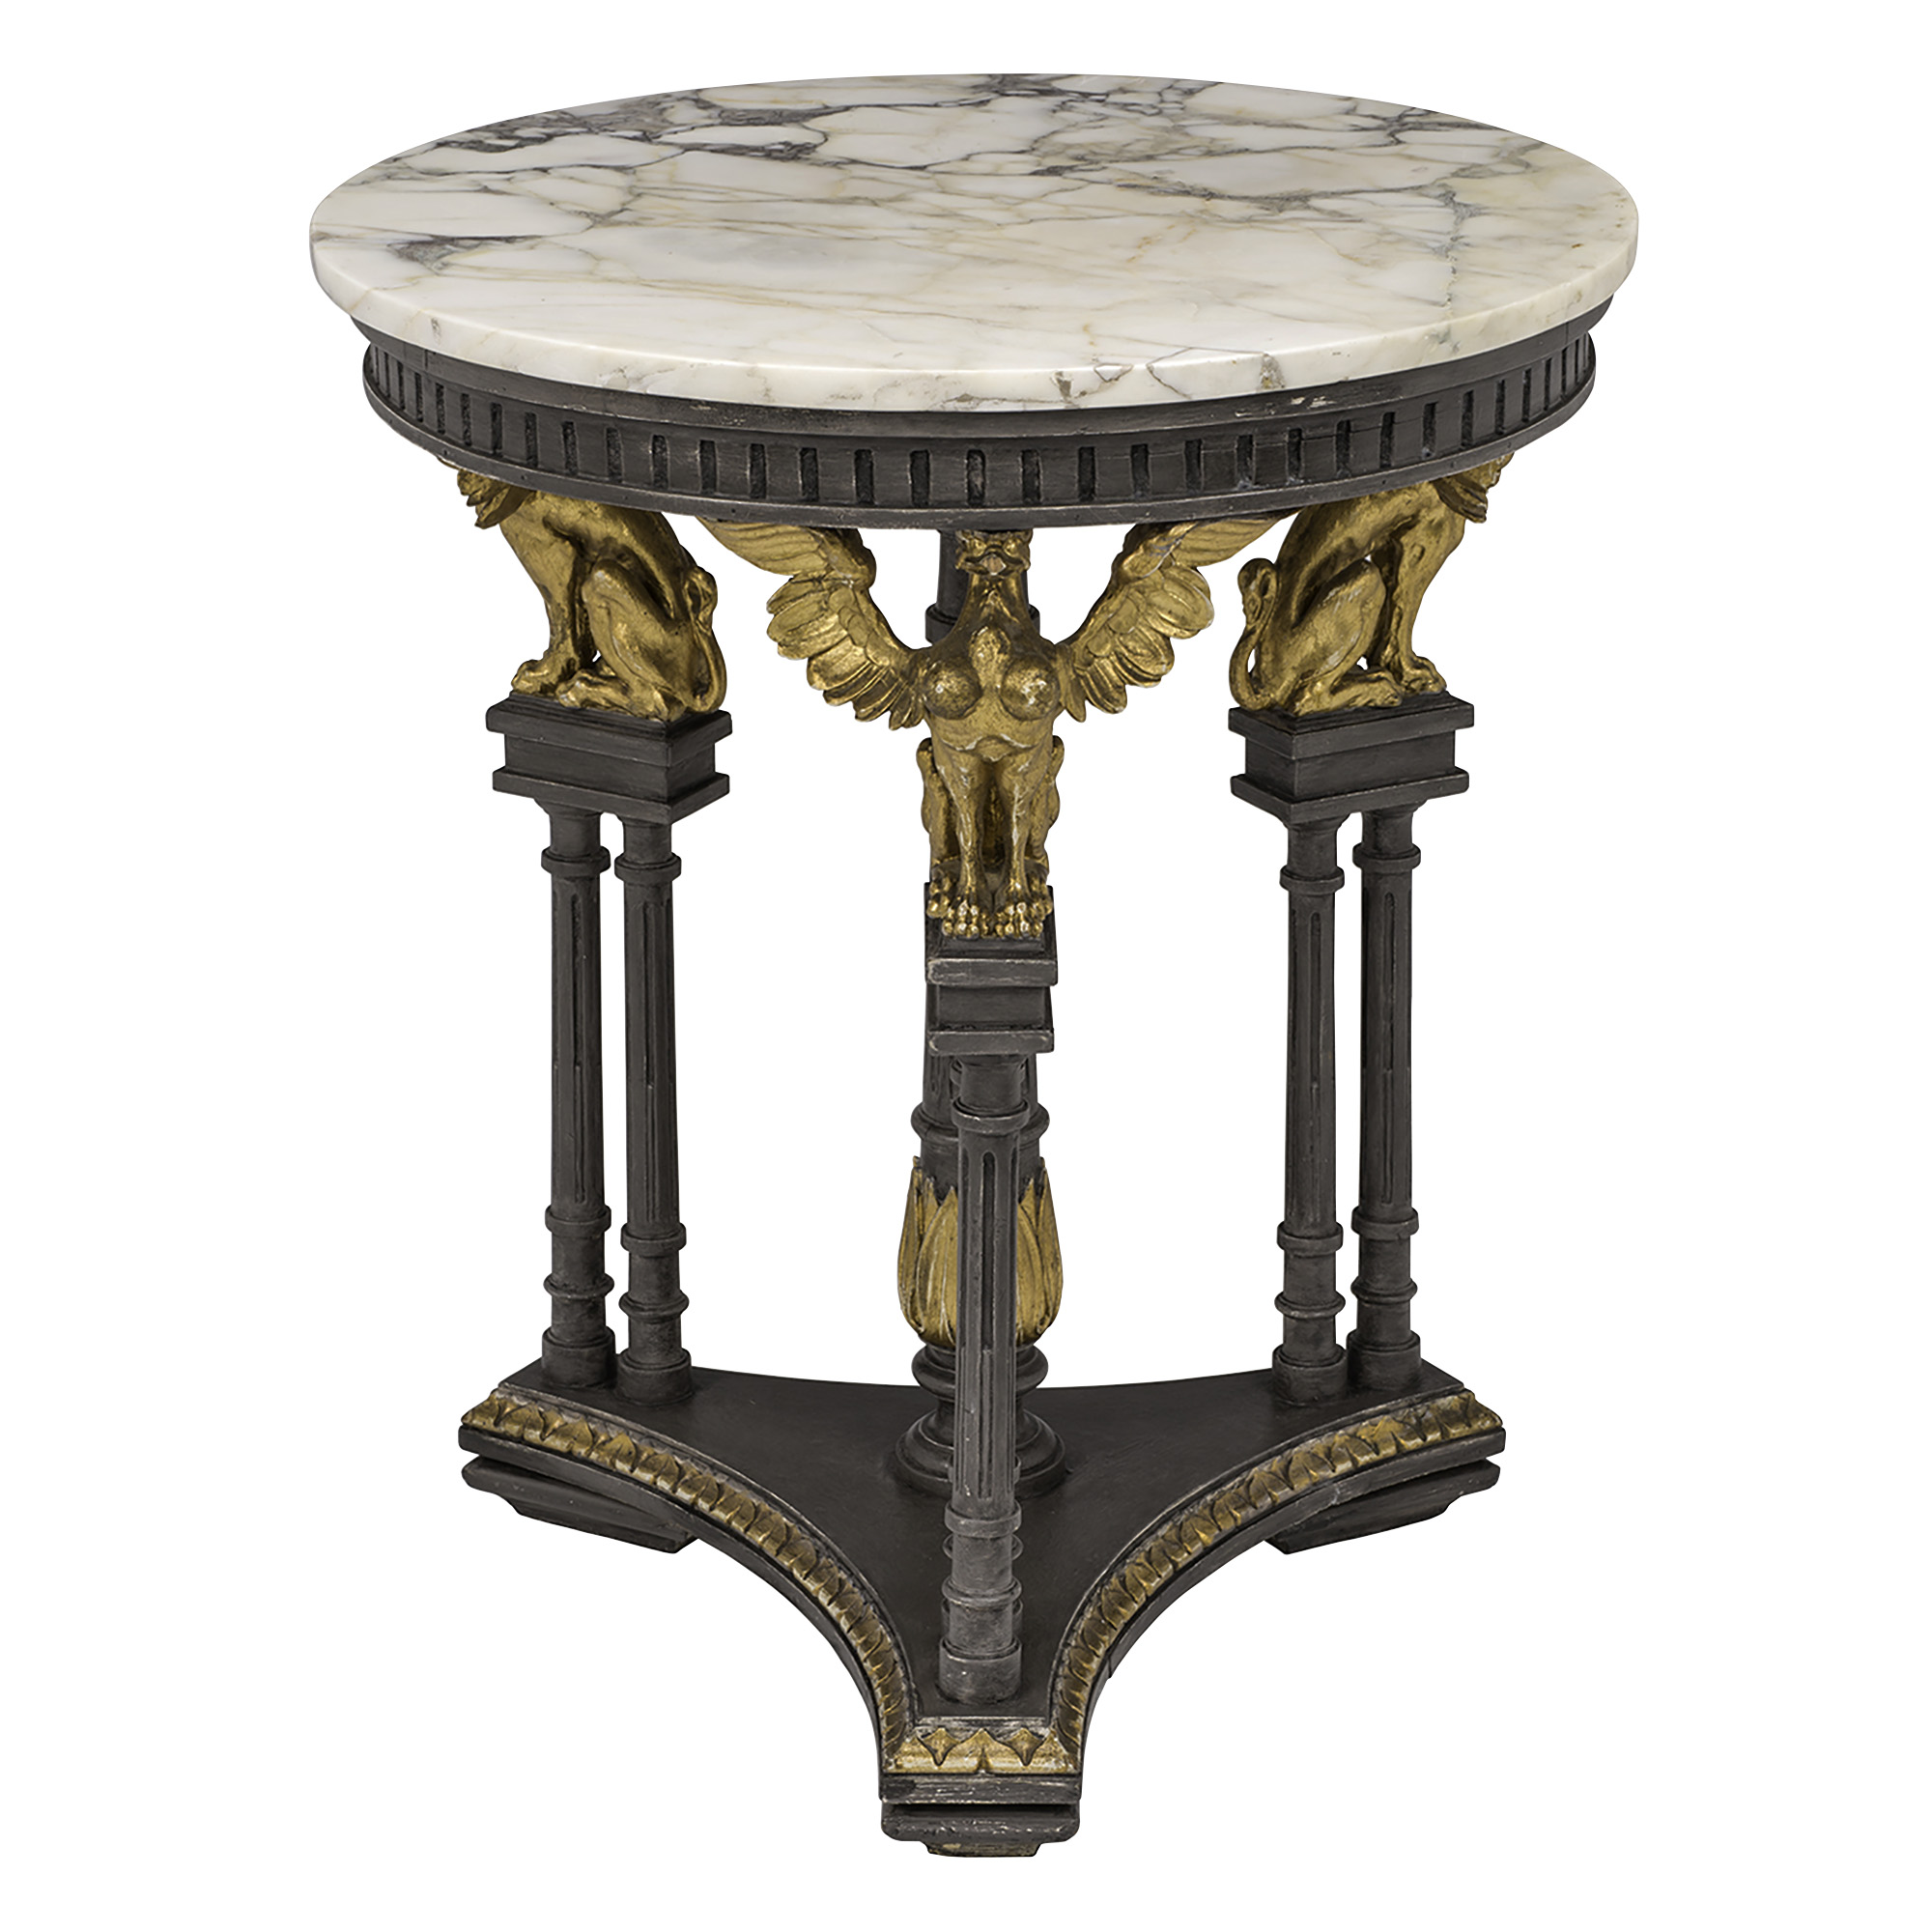 Table-Griffen Bosoms marble-8975-.jpg